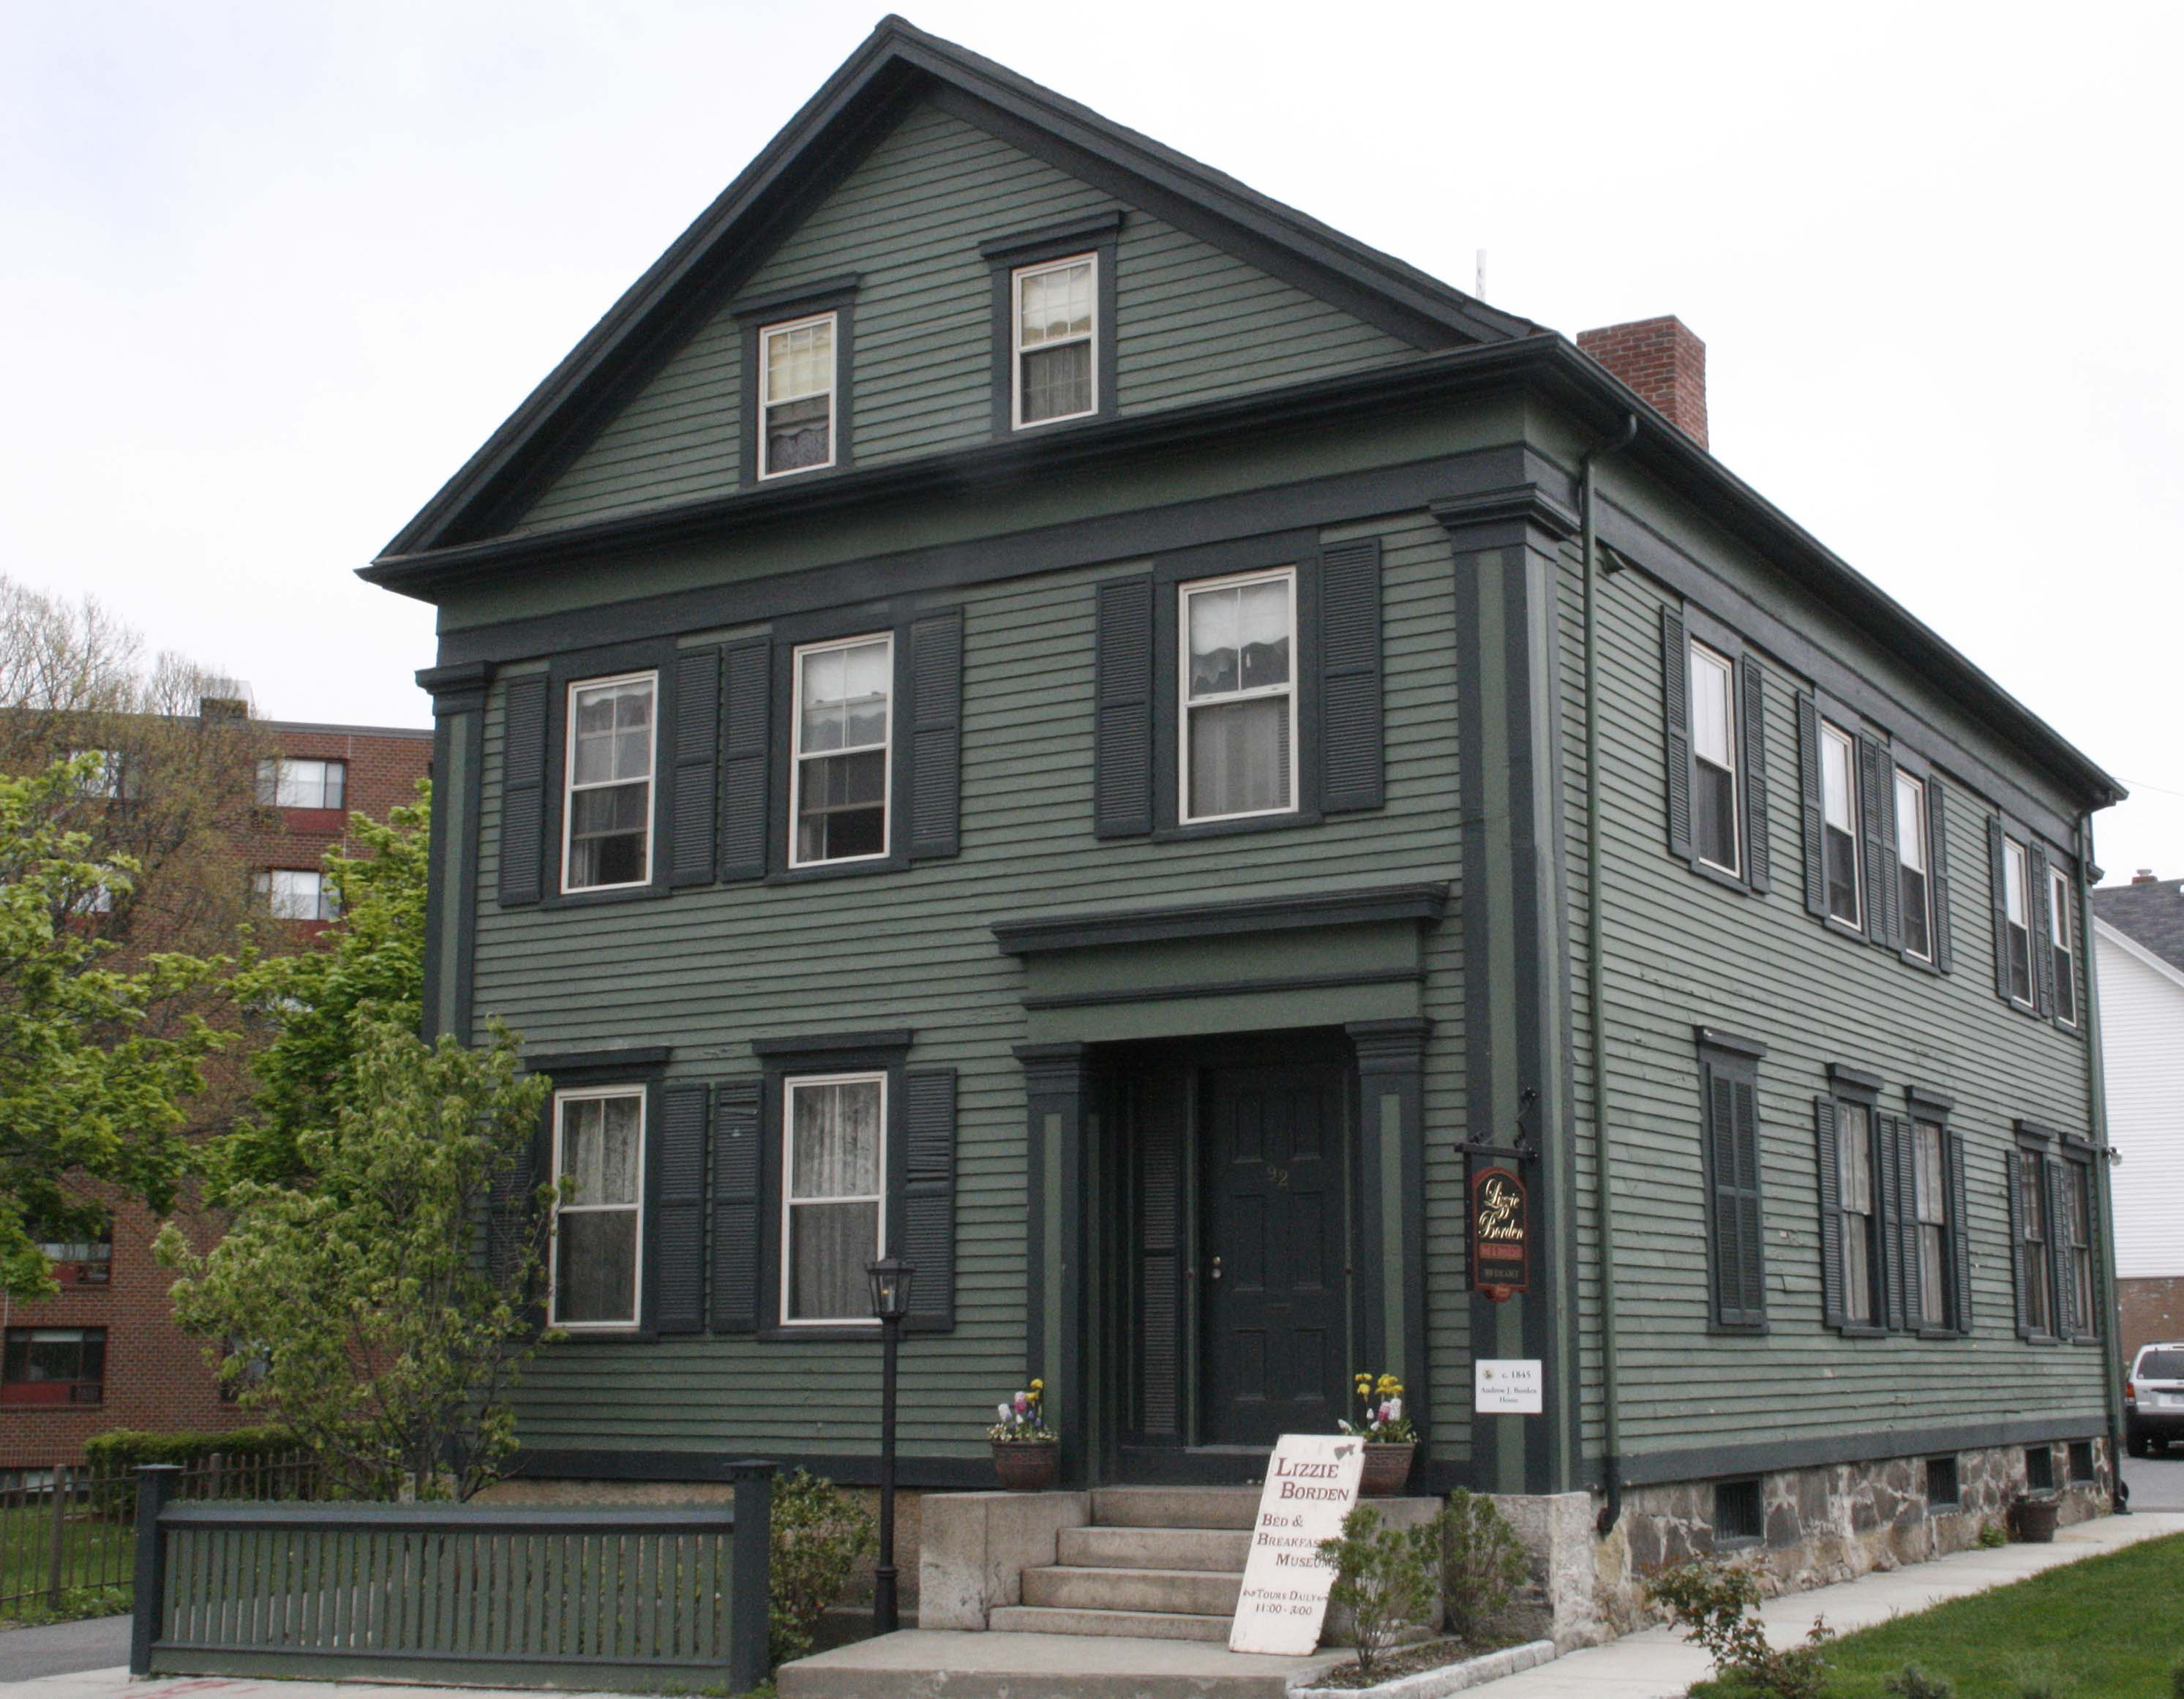 The Lizzie Borden House in Fall River, Massachusetts